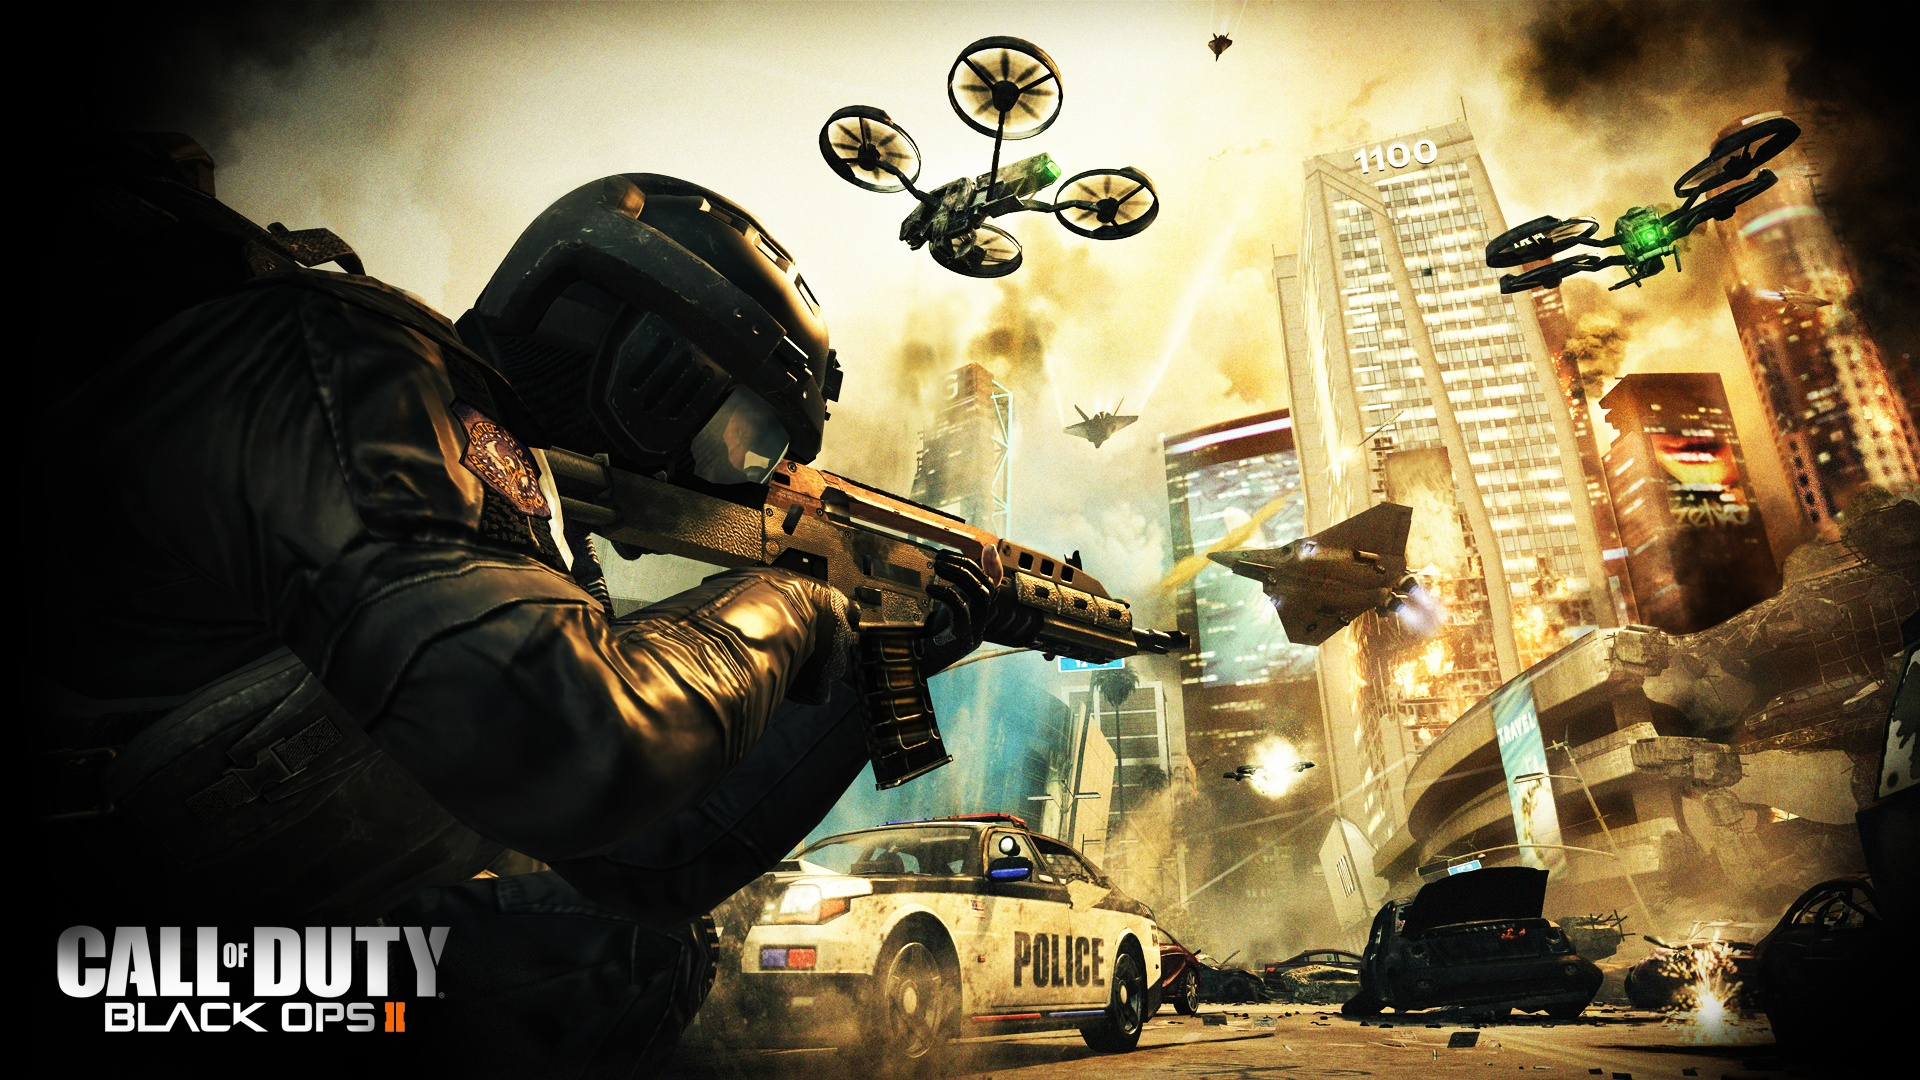 call of duty full hd wallpaper download